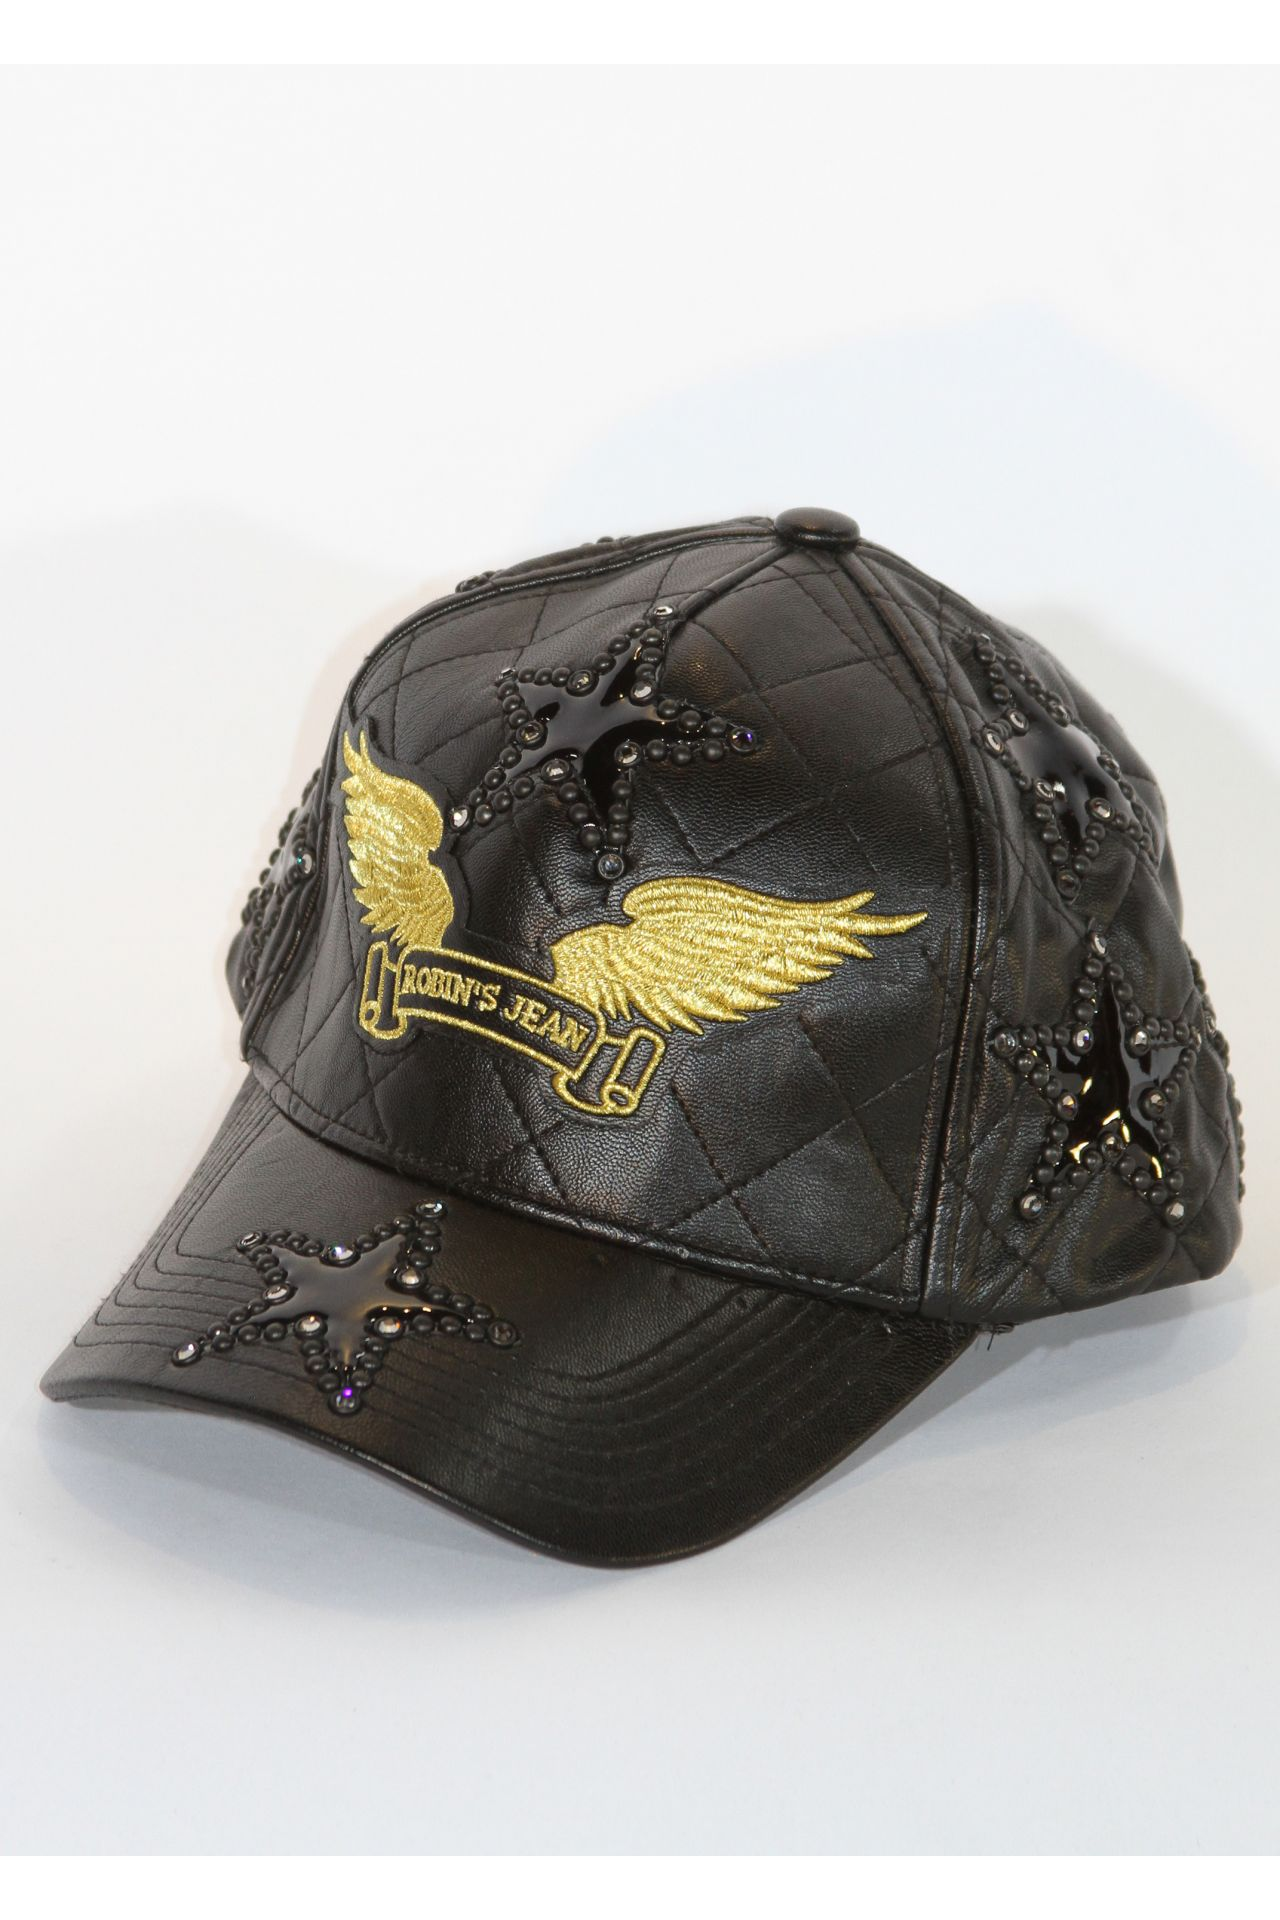 BLACK QUILTED LEATHER CAP WITH STUDDED STAR